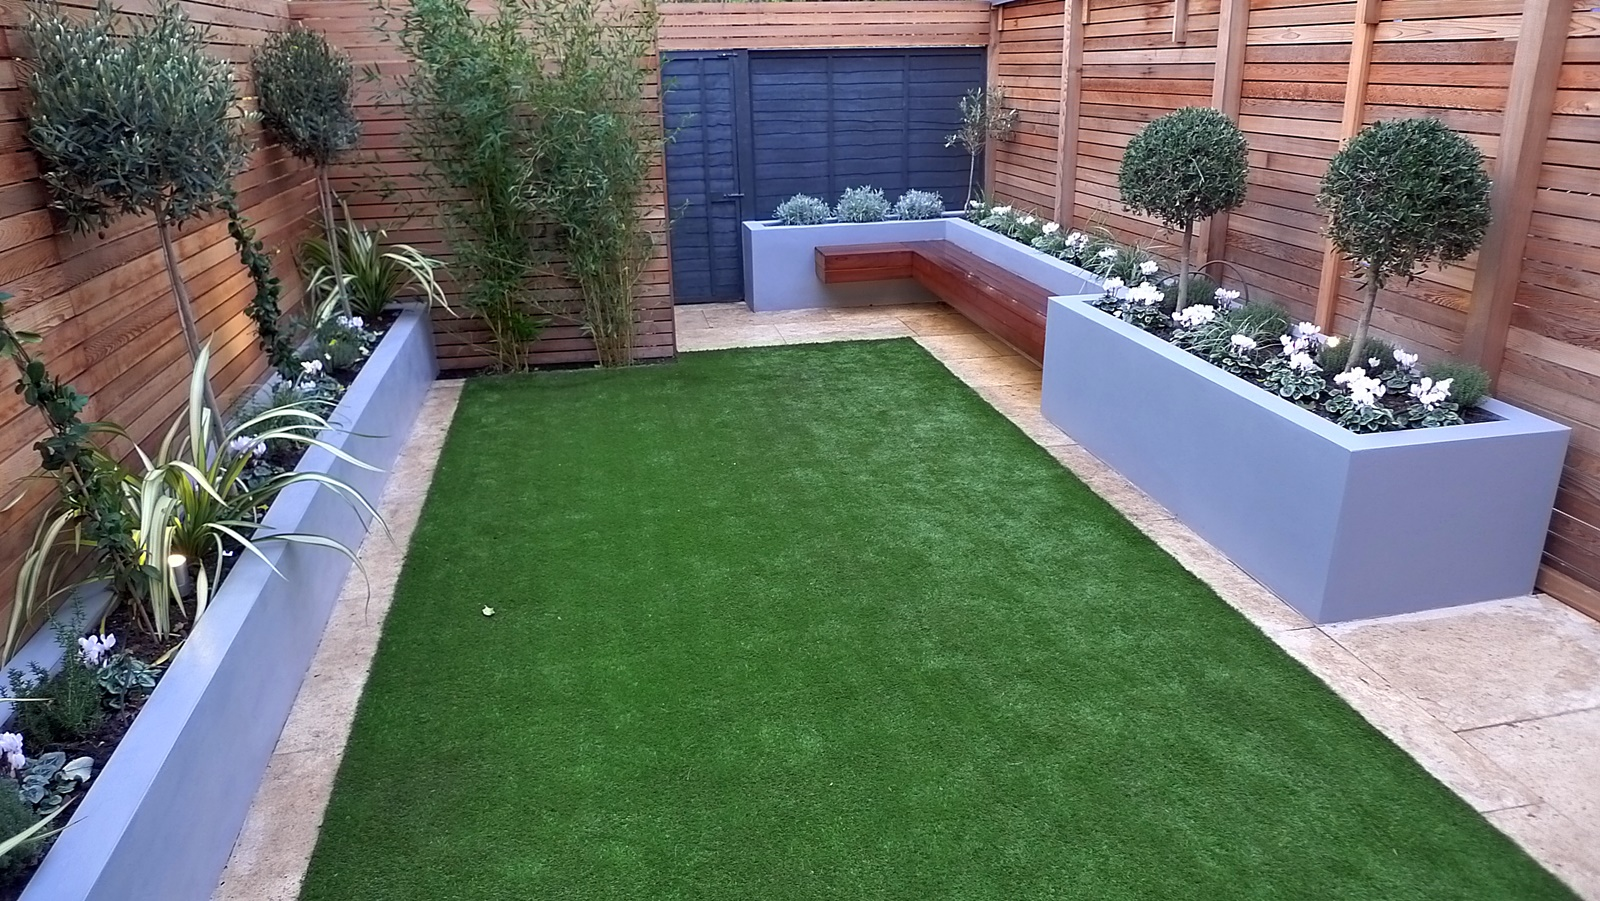 landscape modern garden design - photo #31